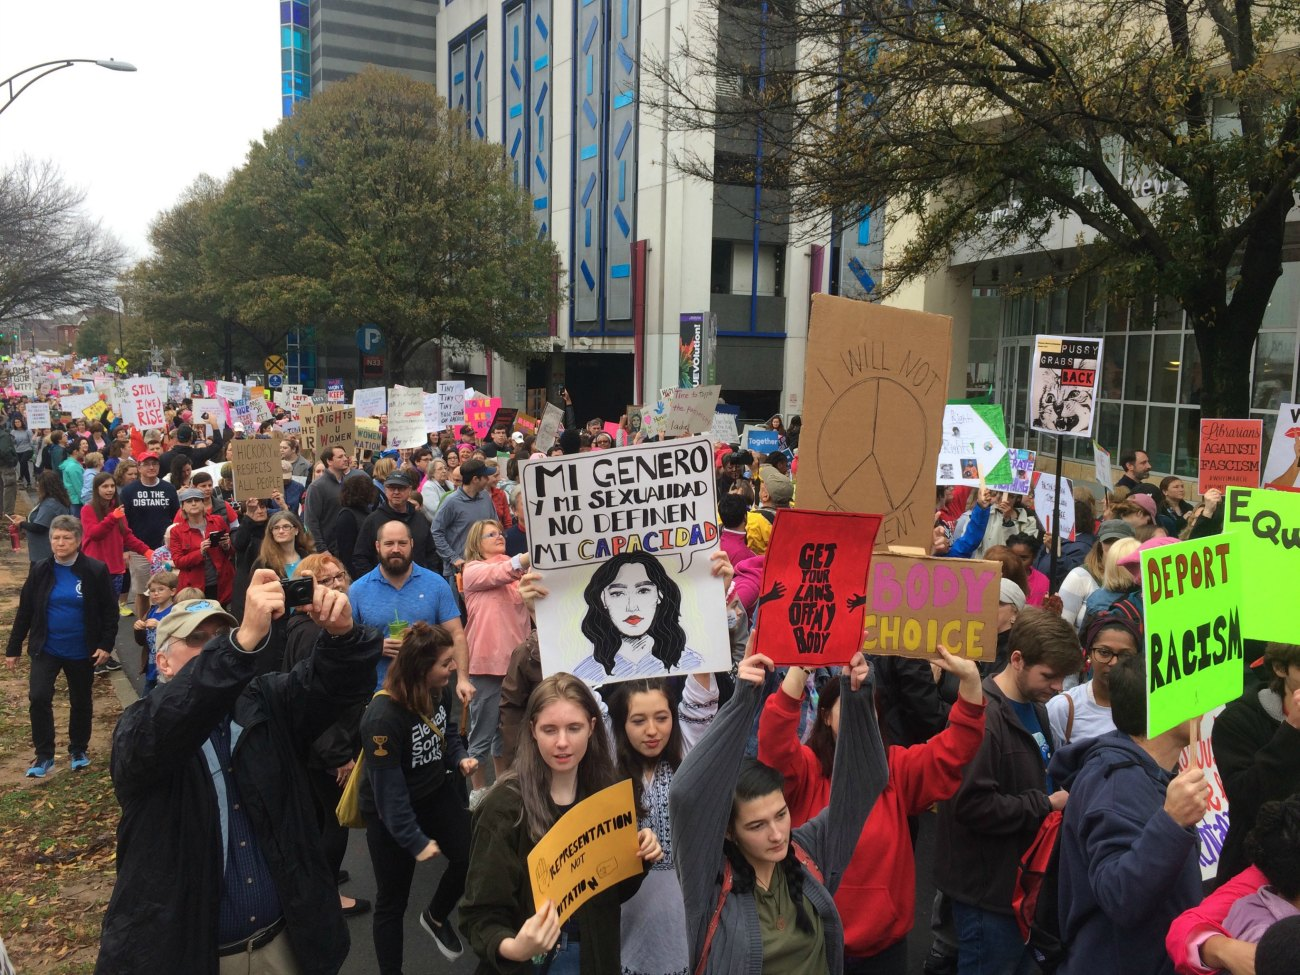 6,200+ people are interested in Saturday's Women United March in Uptown. Here's what to know